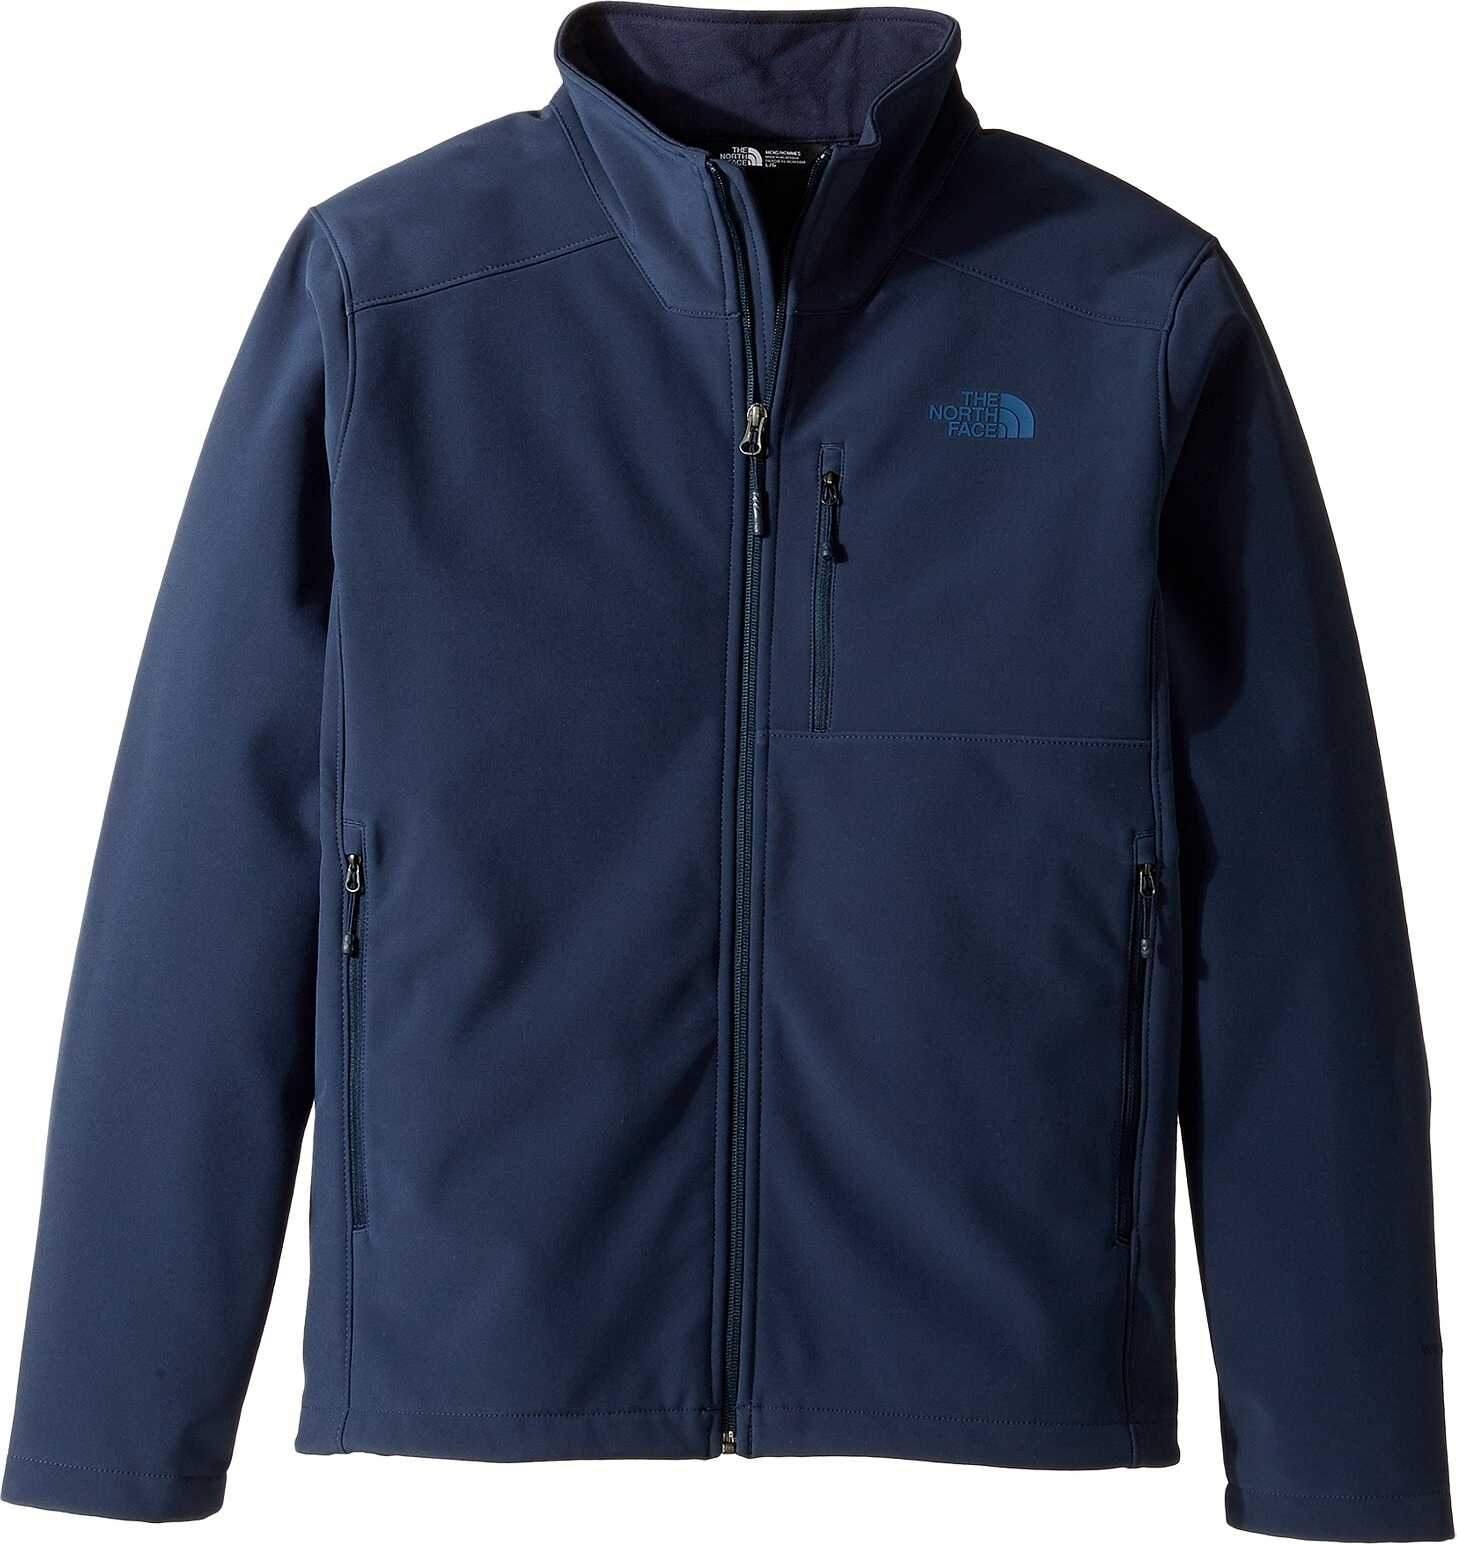 The North Face Apex Bionic 2 Jacket Urban Navy/Urban Navy